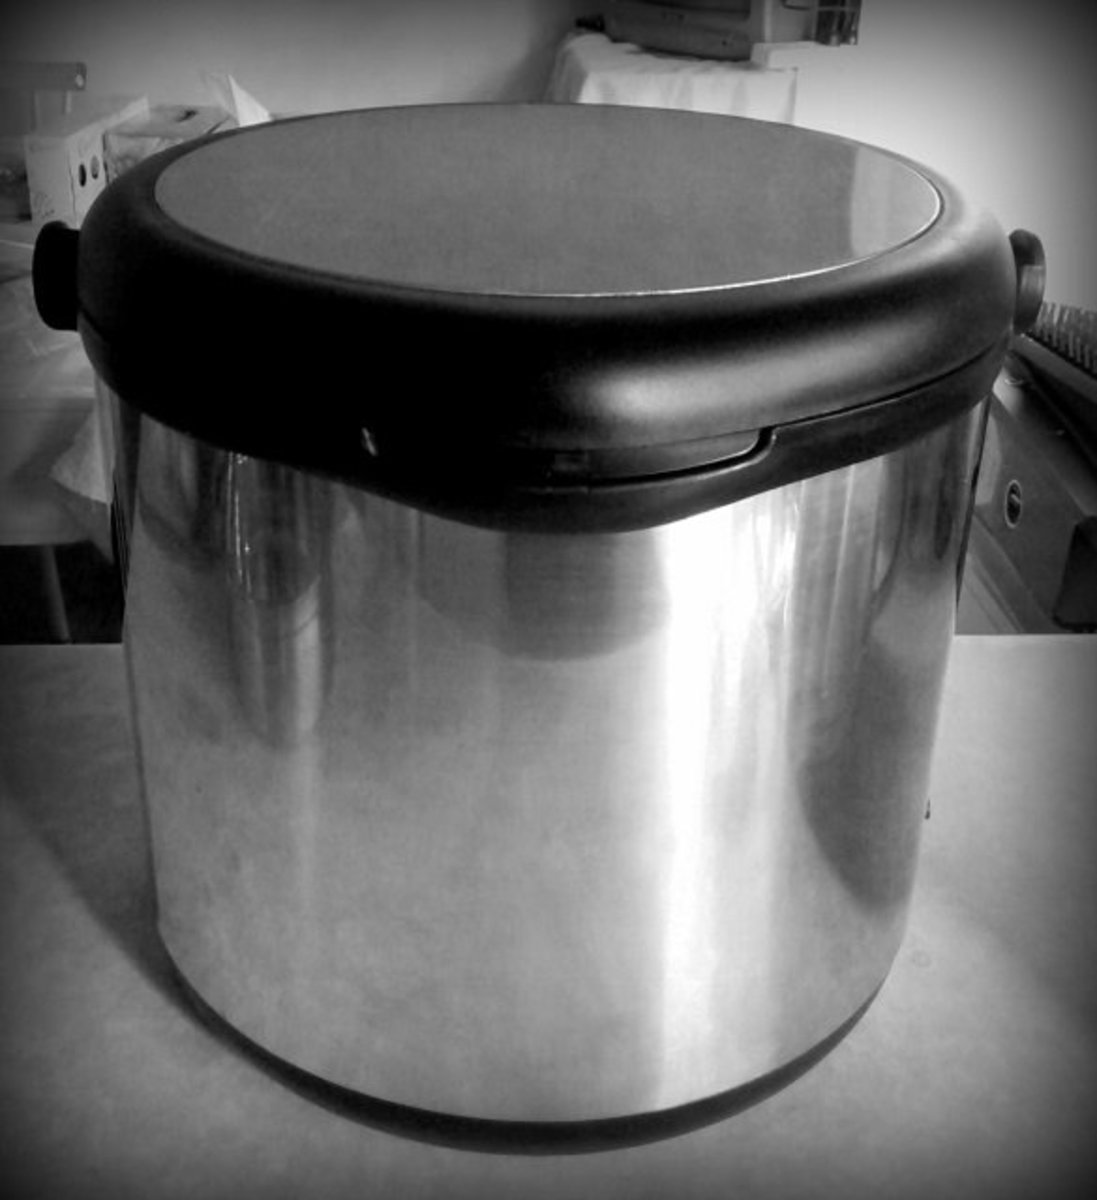 A thermal cooker